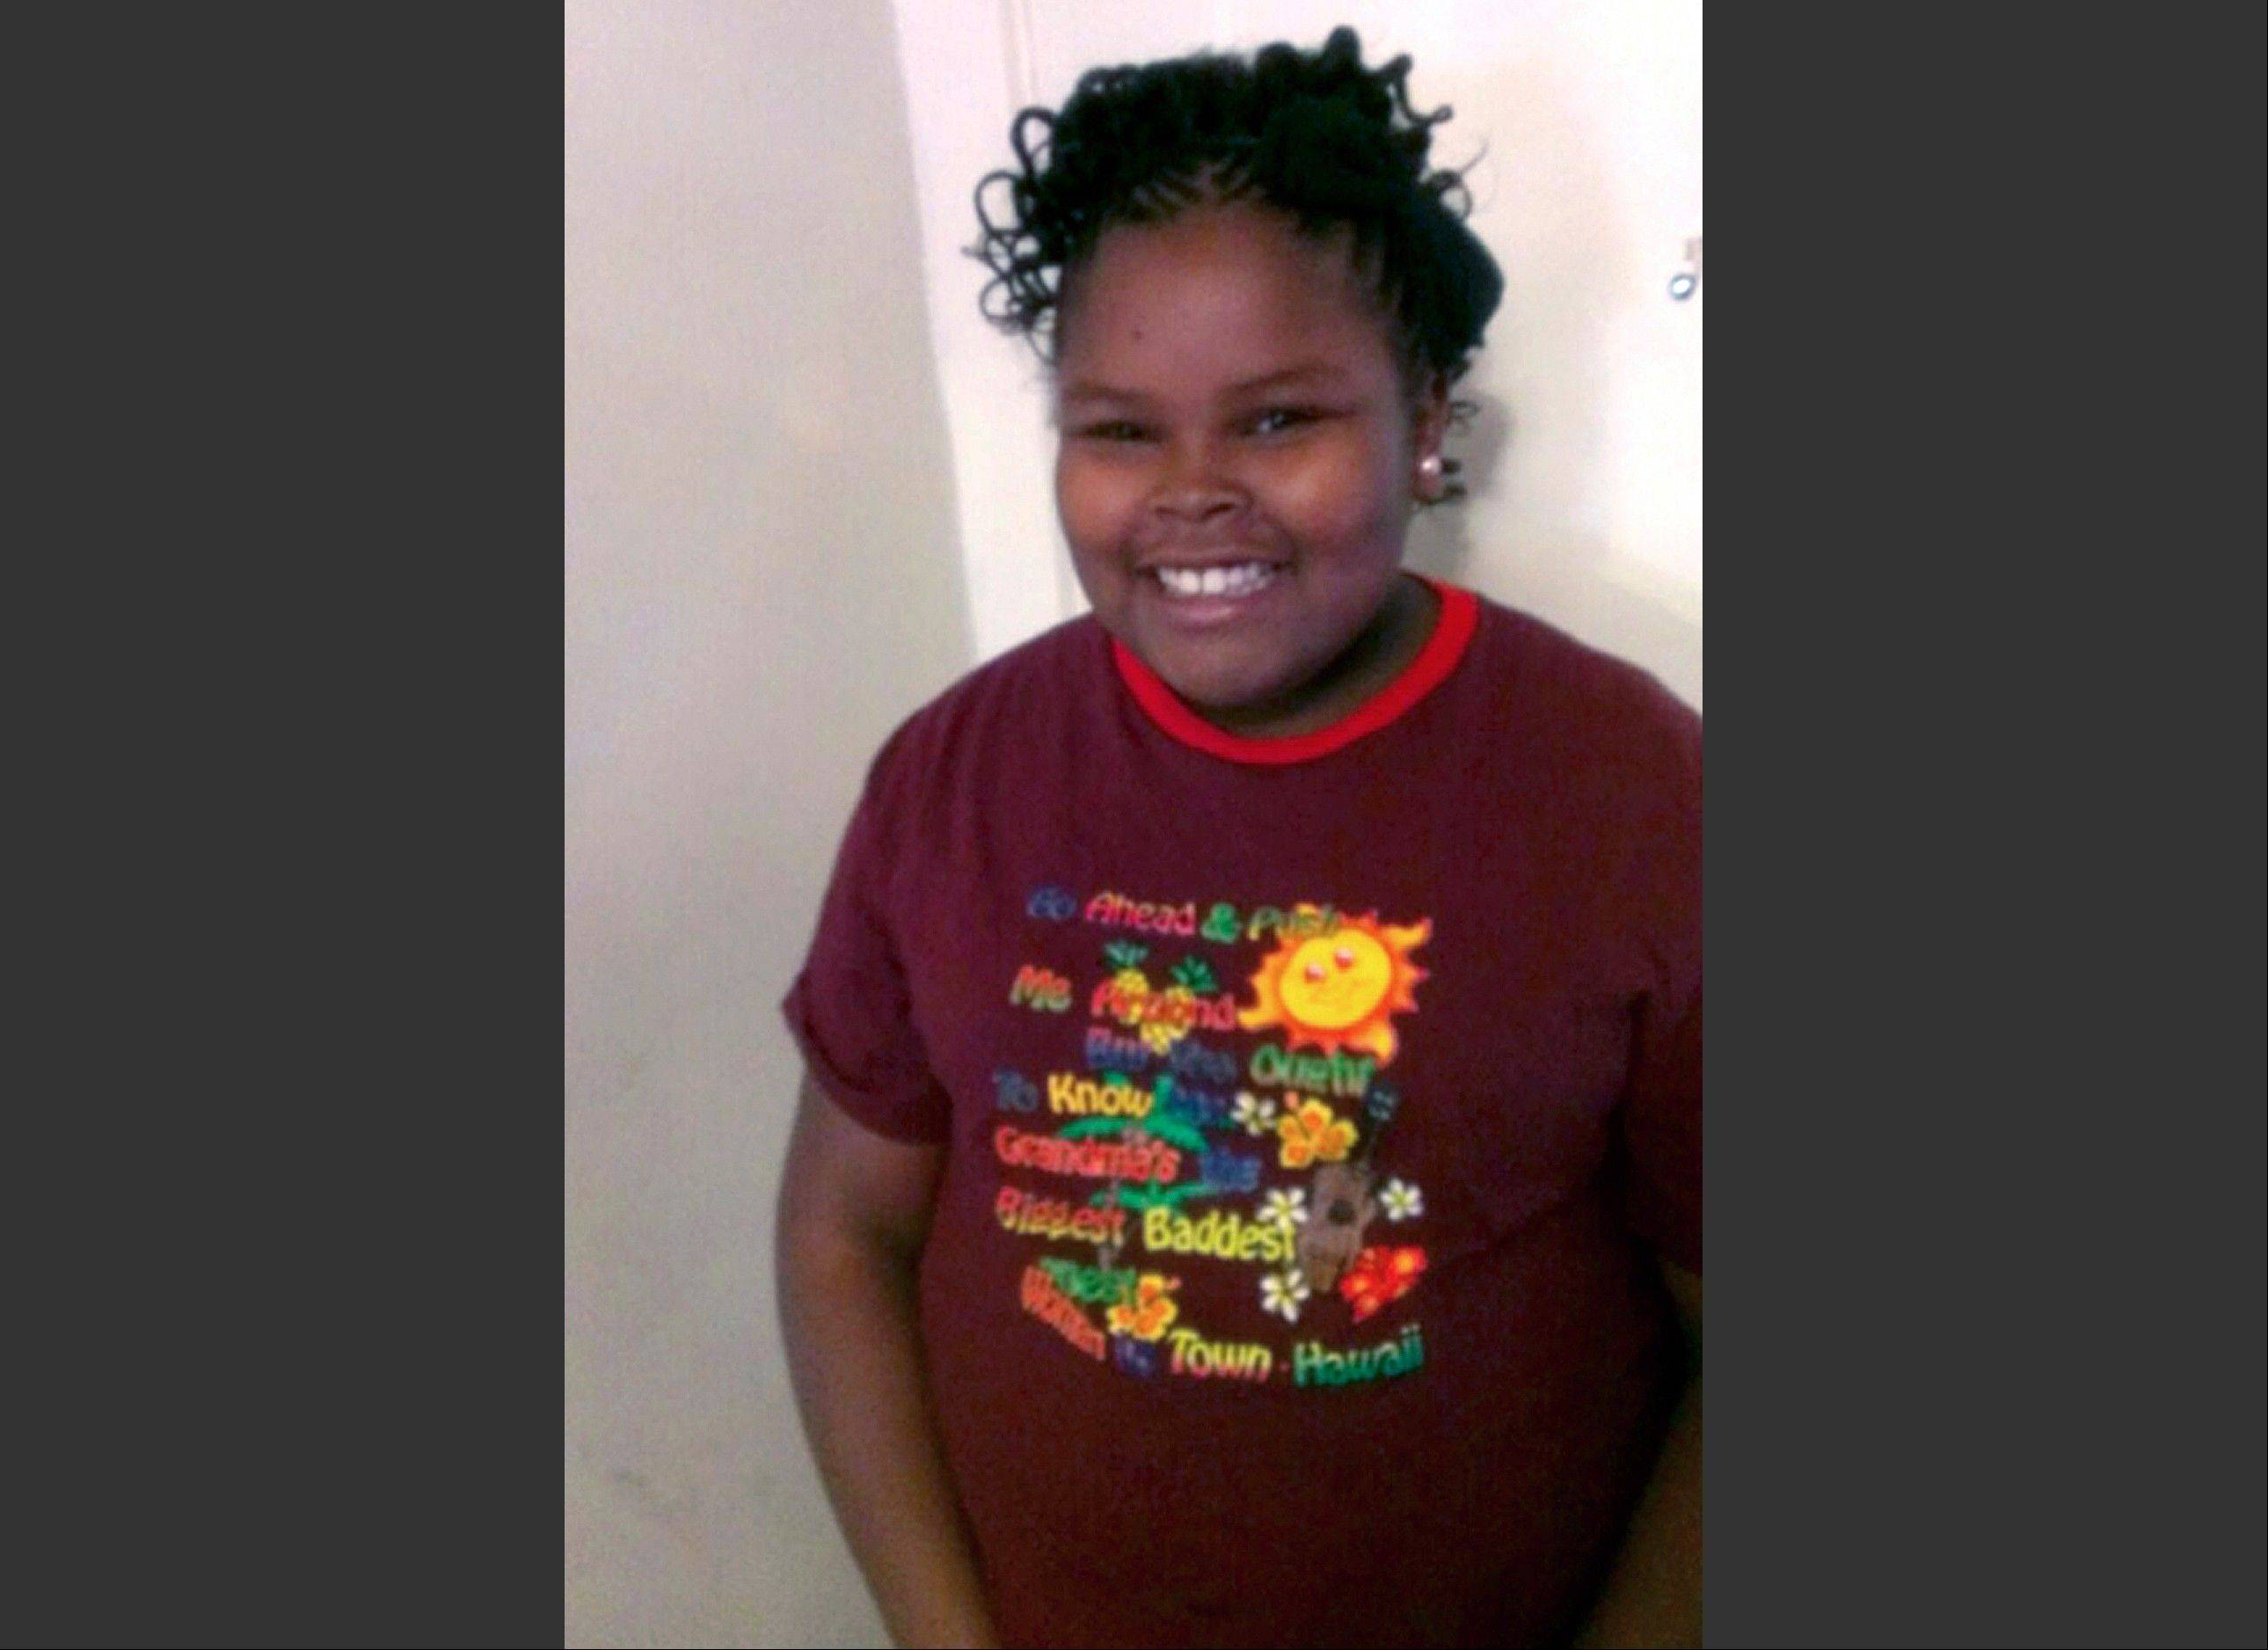 The 13-year-old California girl declared brain dead after a tonsillectomy has been taken out of Children's Hospital of Oakland, her family's attorney said late Sunday.Jahi McMath left the hospital in a private ambulance shortly before 8 p.m. Sunday, Christopher Dolan told The Associated Press.